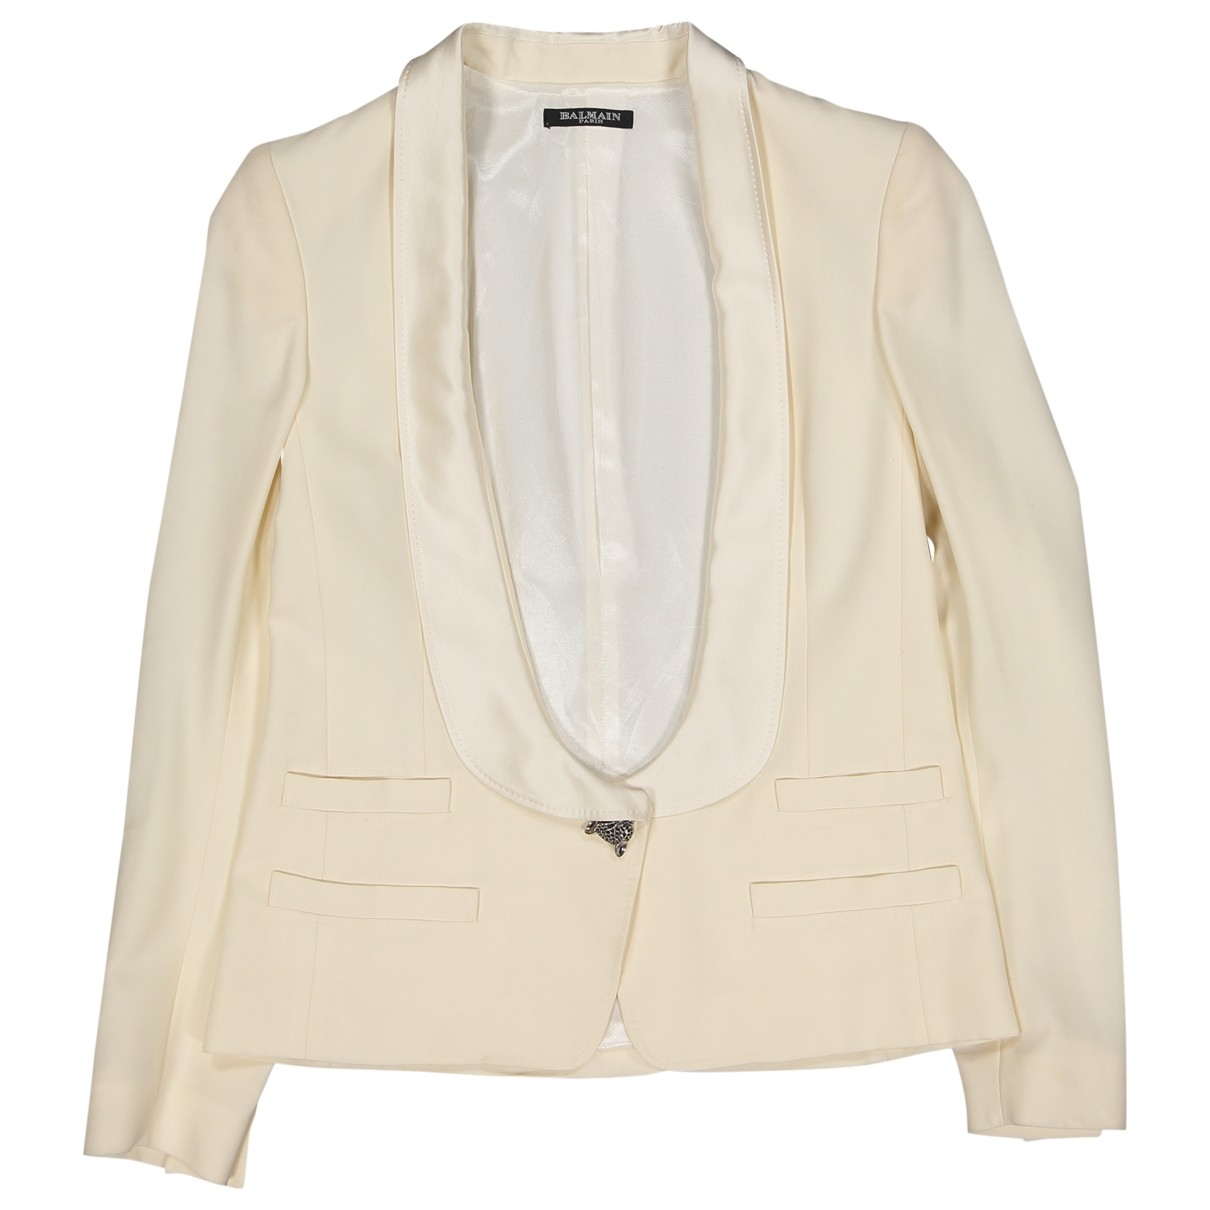 Balmain \N Ecru Wool jacket for Women 36 FR